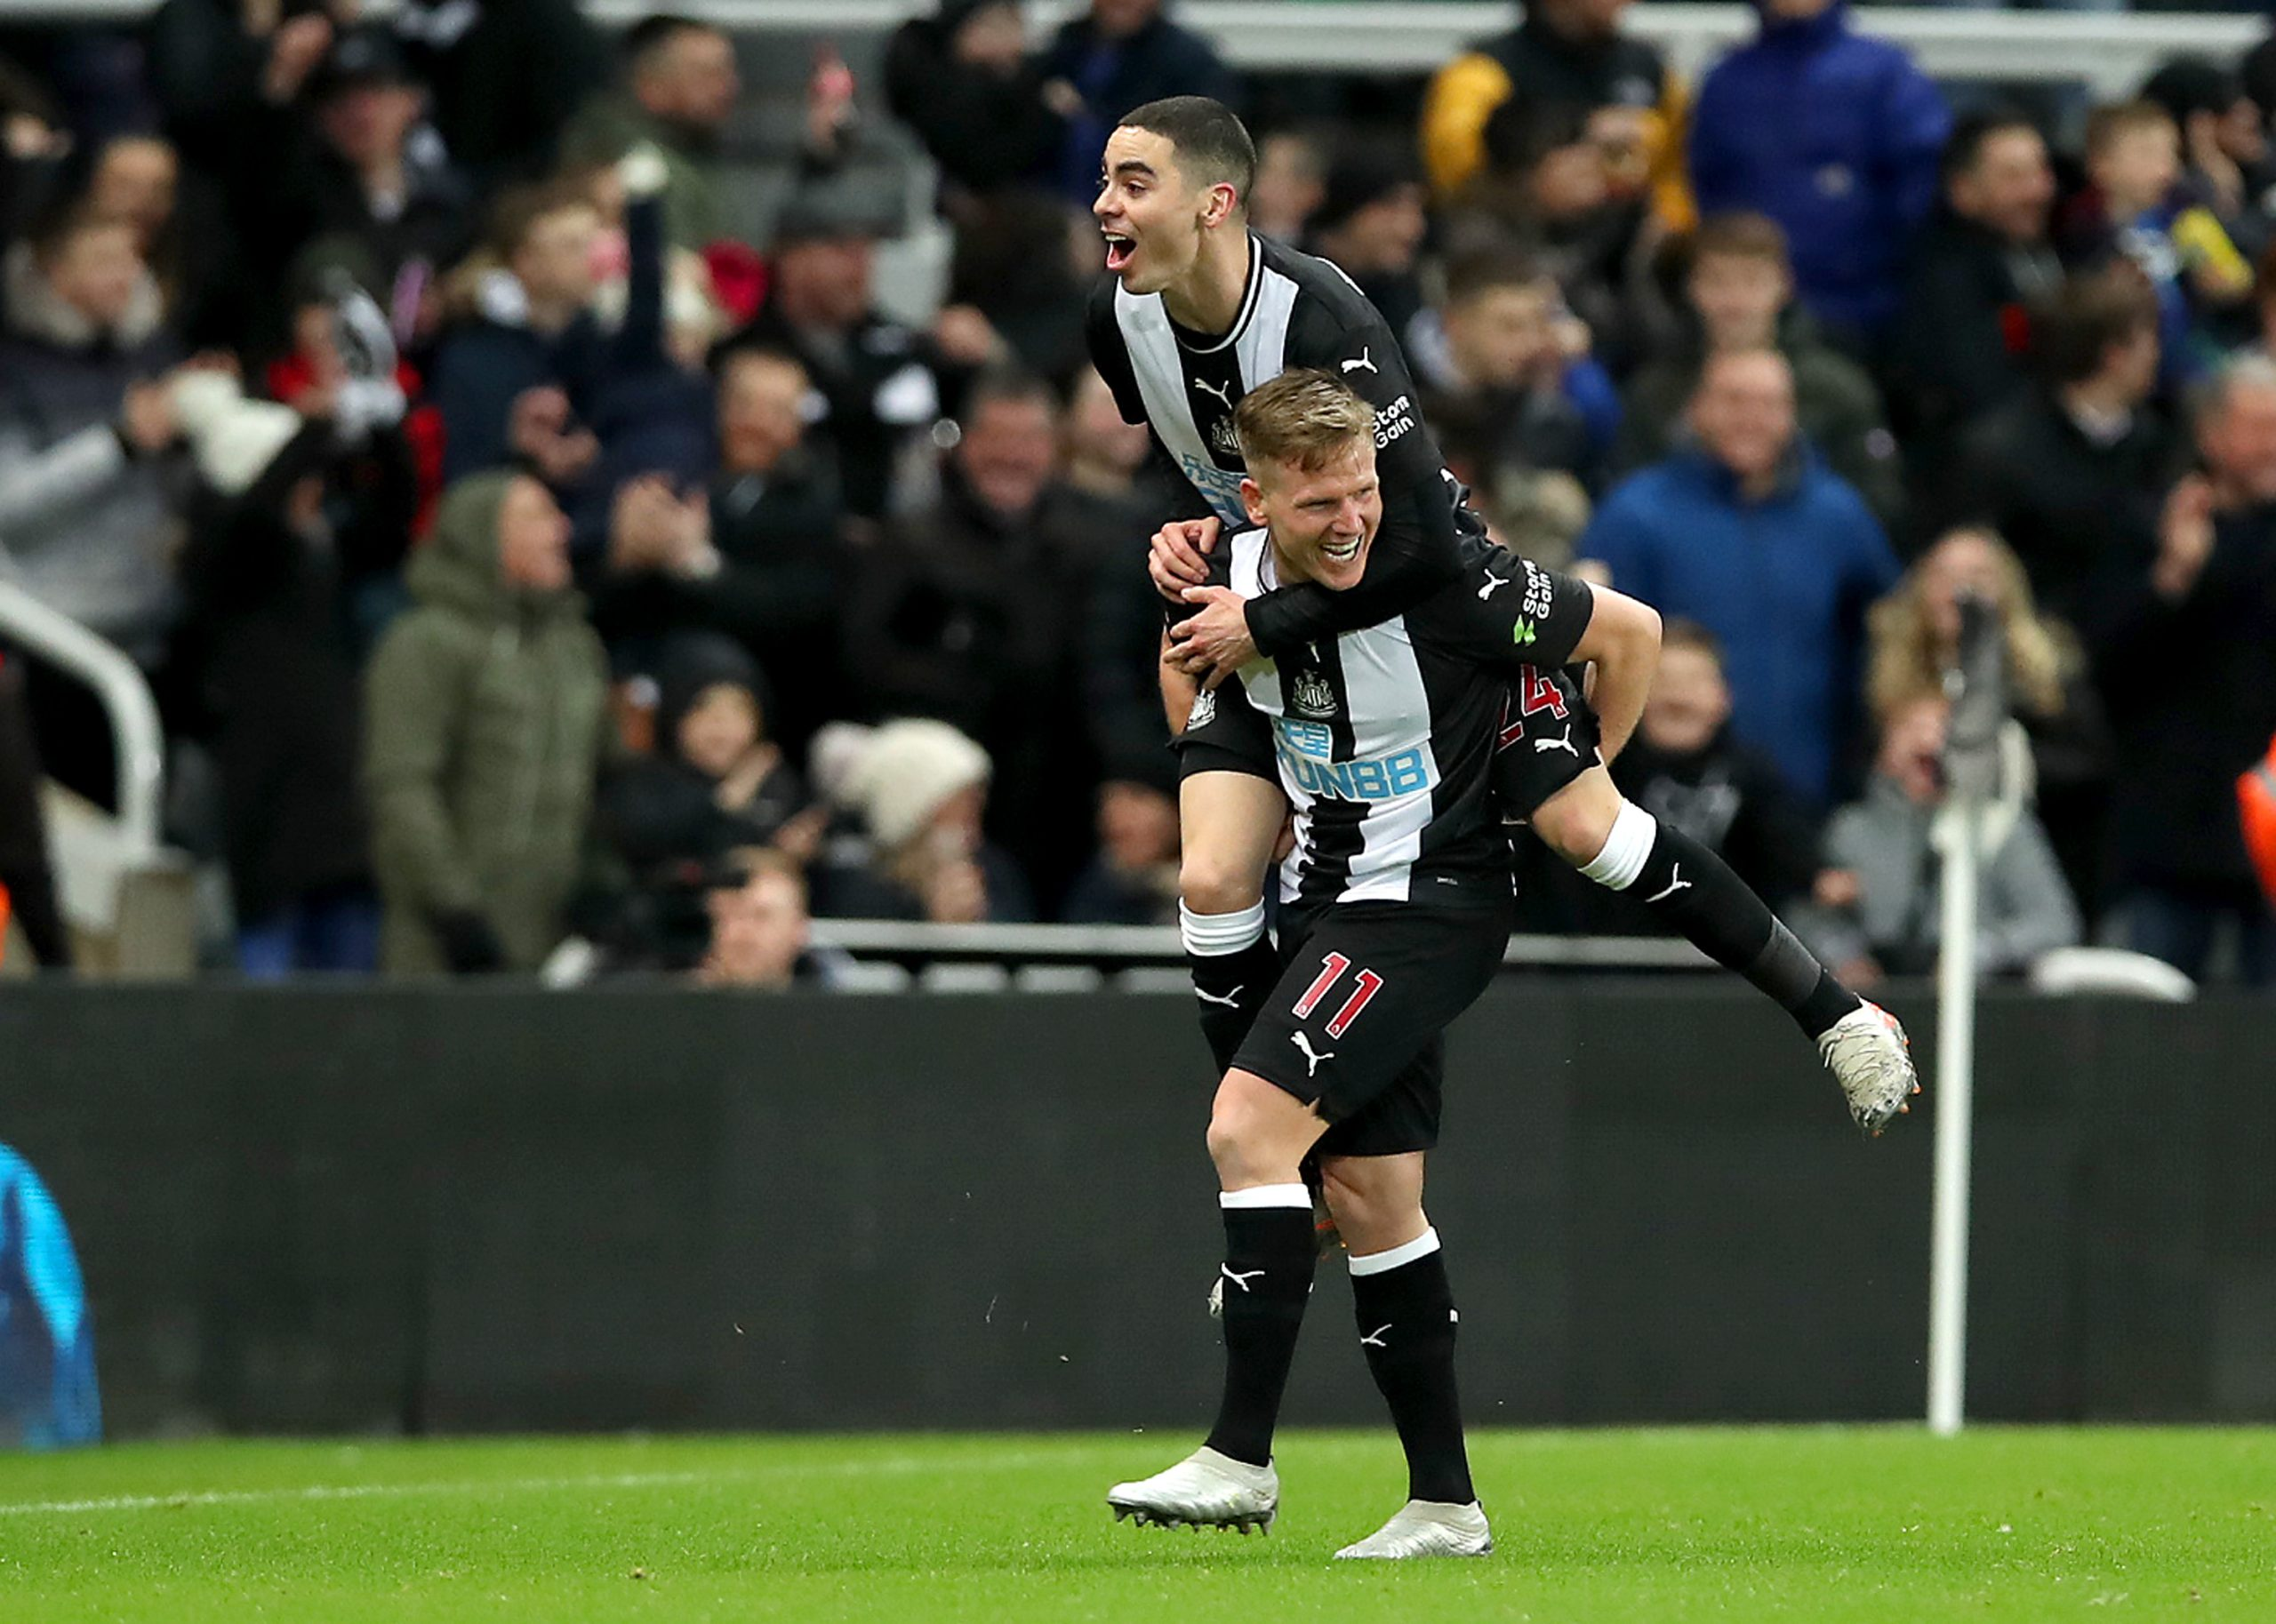 a-look-at-newcastle-united's-'overachieving'-squad